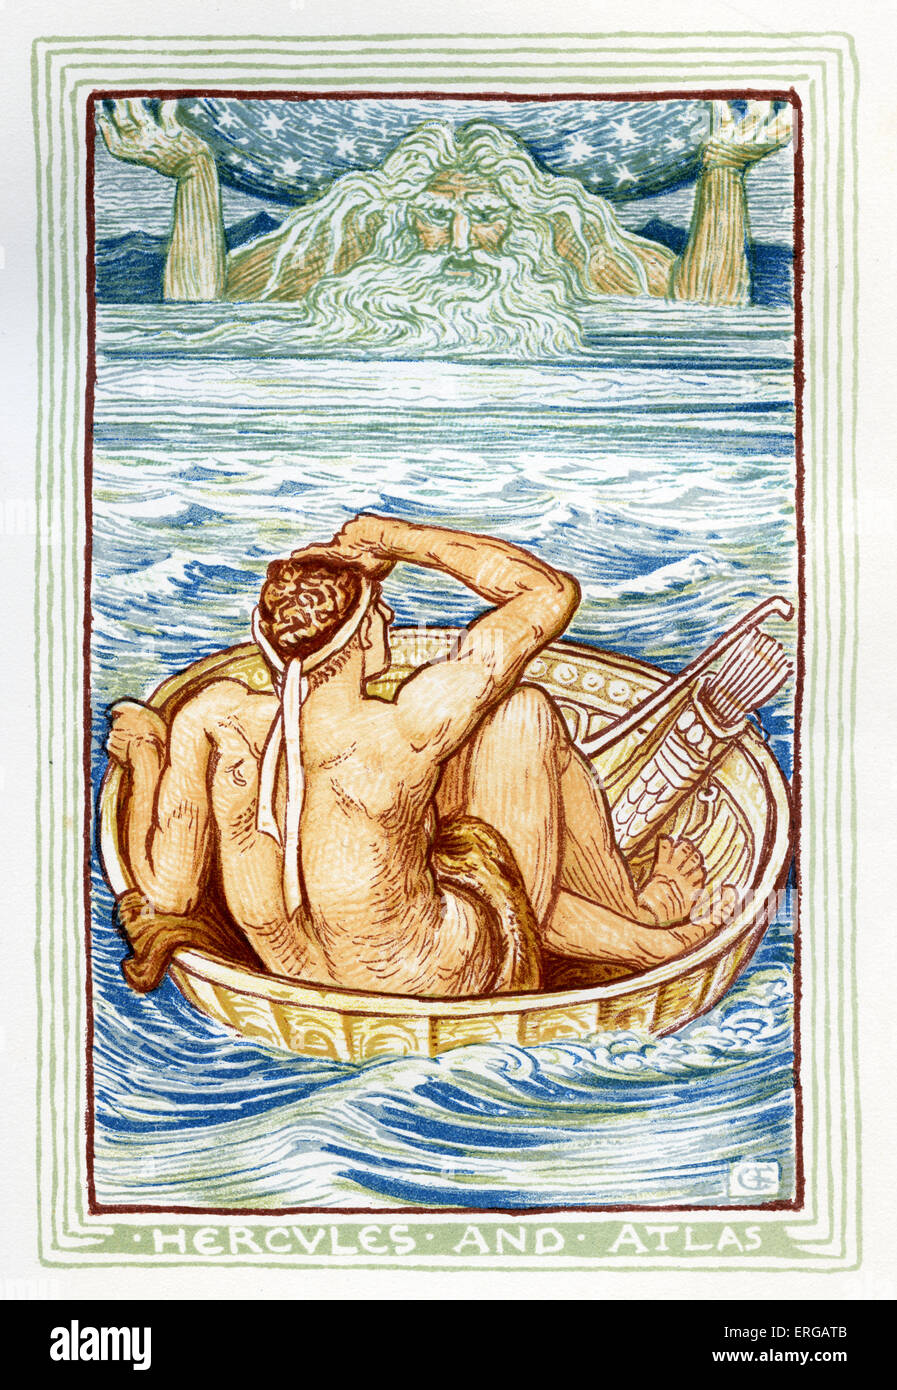 Hercules and Atlas. Retelling of Greek Myths by Nathaniel Hawthorne (1804 – 1864). Illustrations by Walter Crane - Stock Image